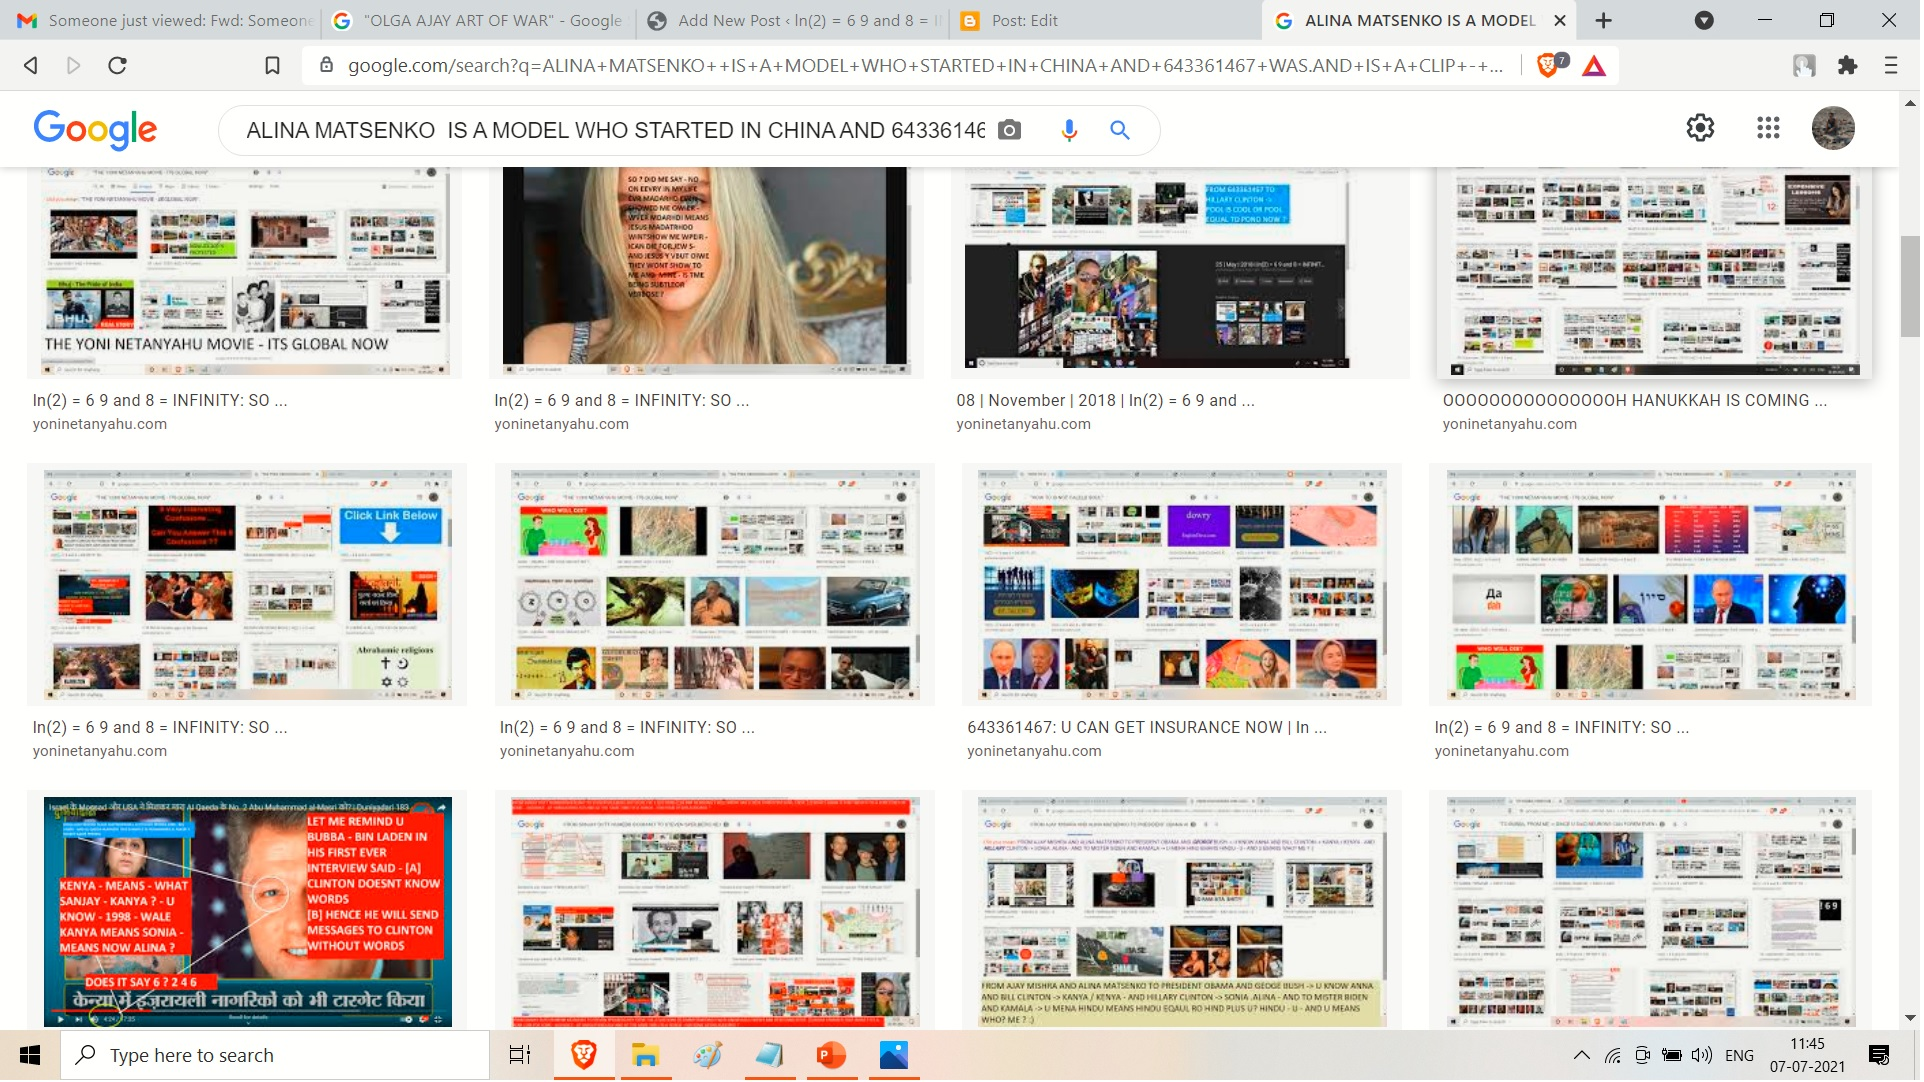 --AND HERE IS ALINA MATSENKO A MODEL WHO SATRTED IN CHINA. UI YES YES MY AIR IN 1987 IIT JEE WAS 3980 WHCH -= UK LYUS RAIN MENAS LONDON PLUS RAIN MENAS MAYFAIR IN LCUKNOW LONDON AND MONSOON--